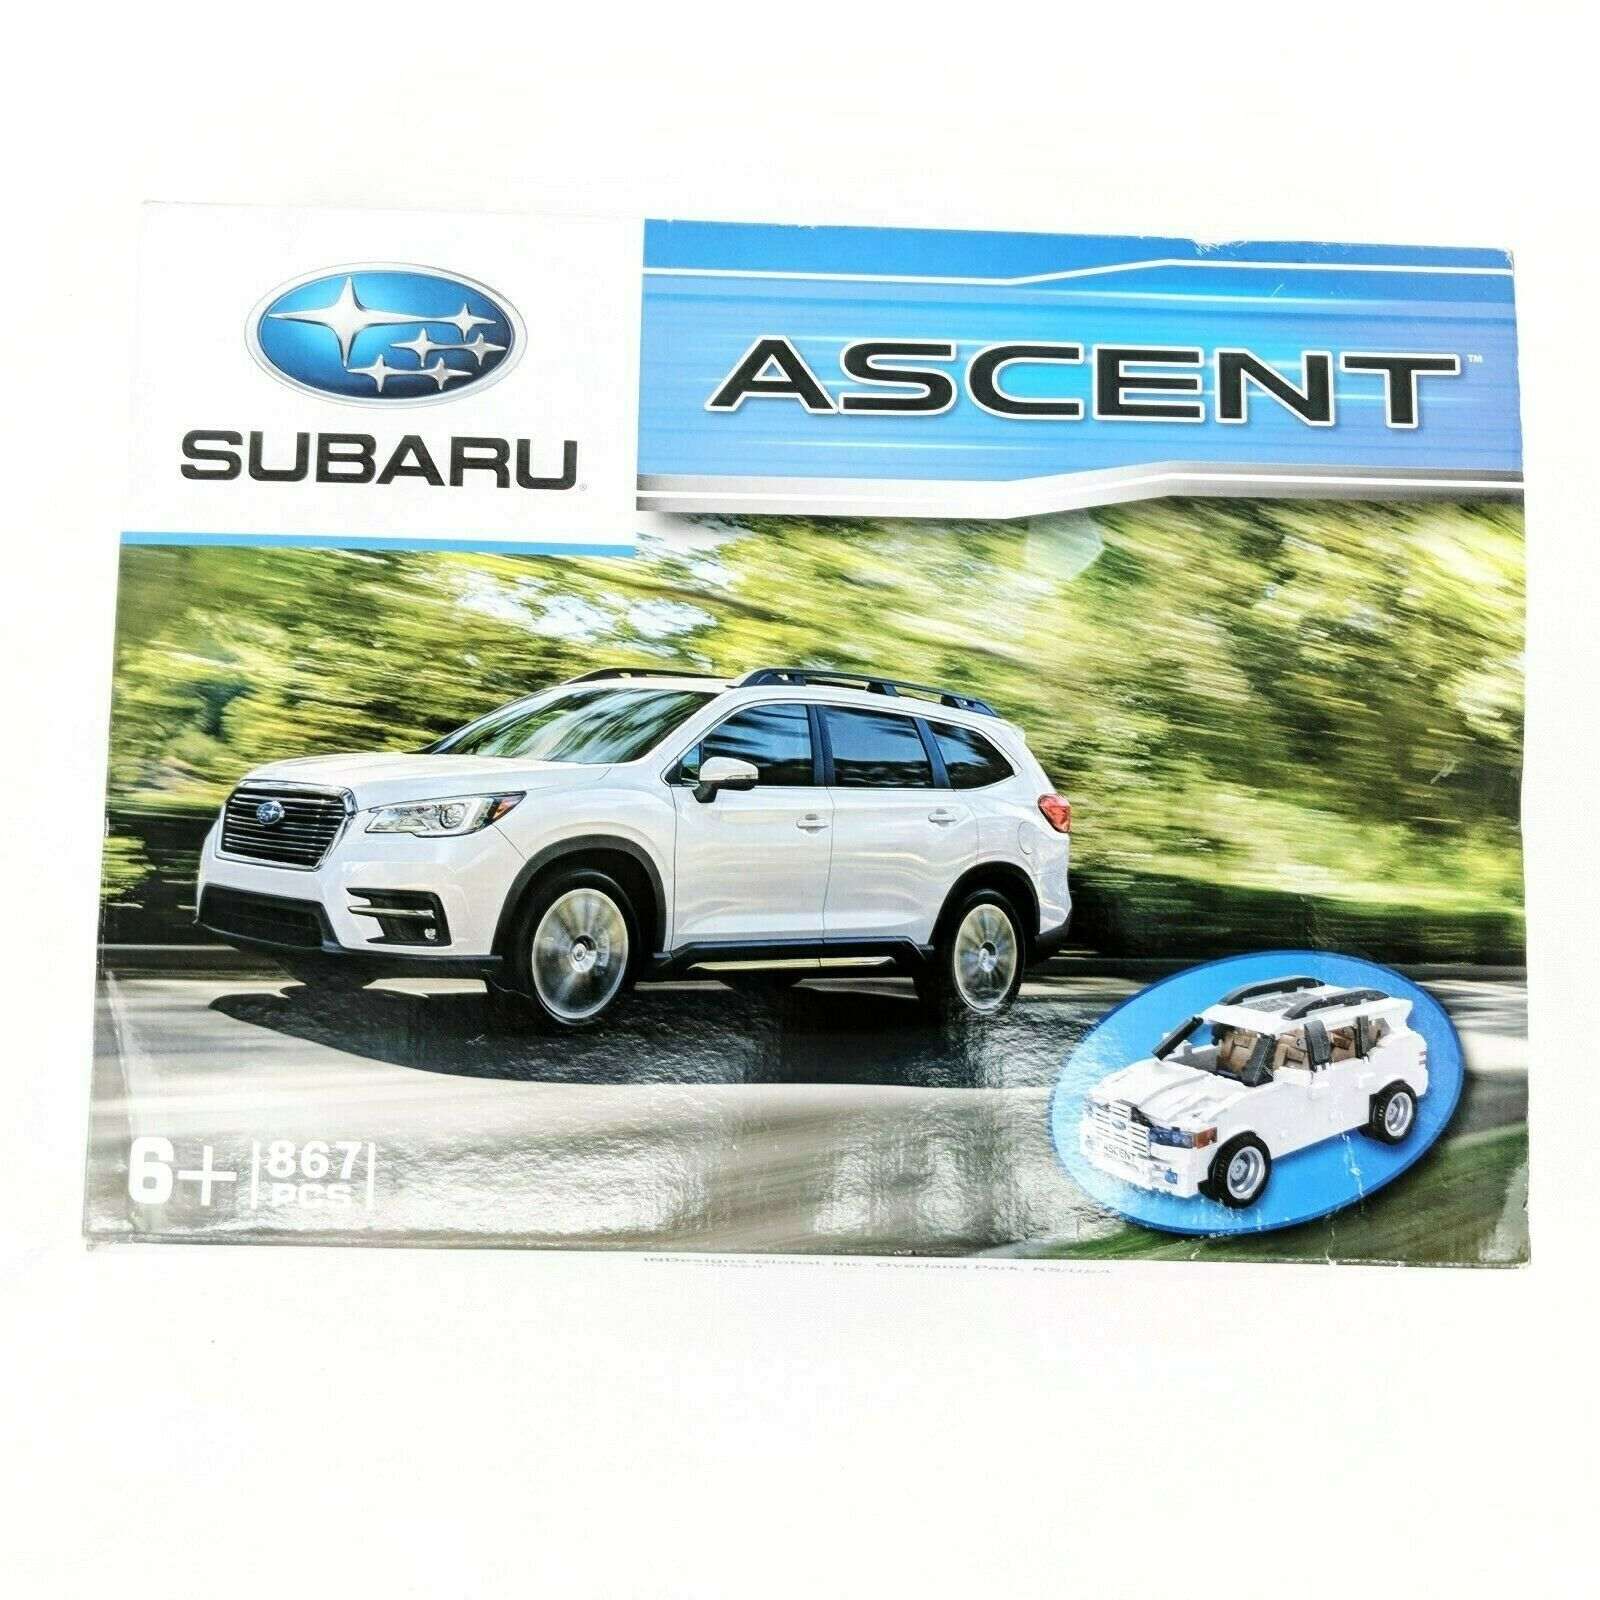 Subaru Ascent 867 Piece Lego Brick Car Collectible Display